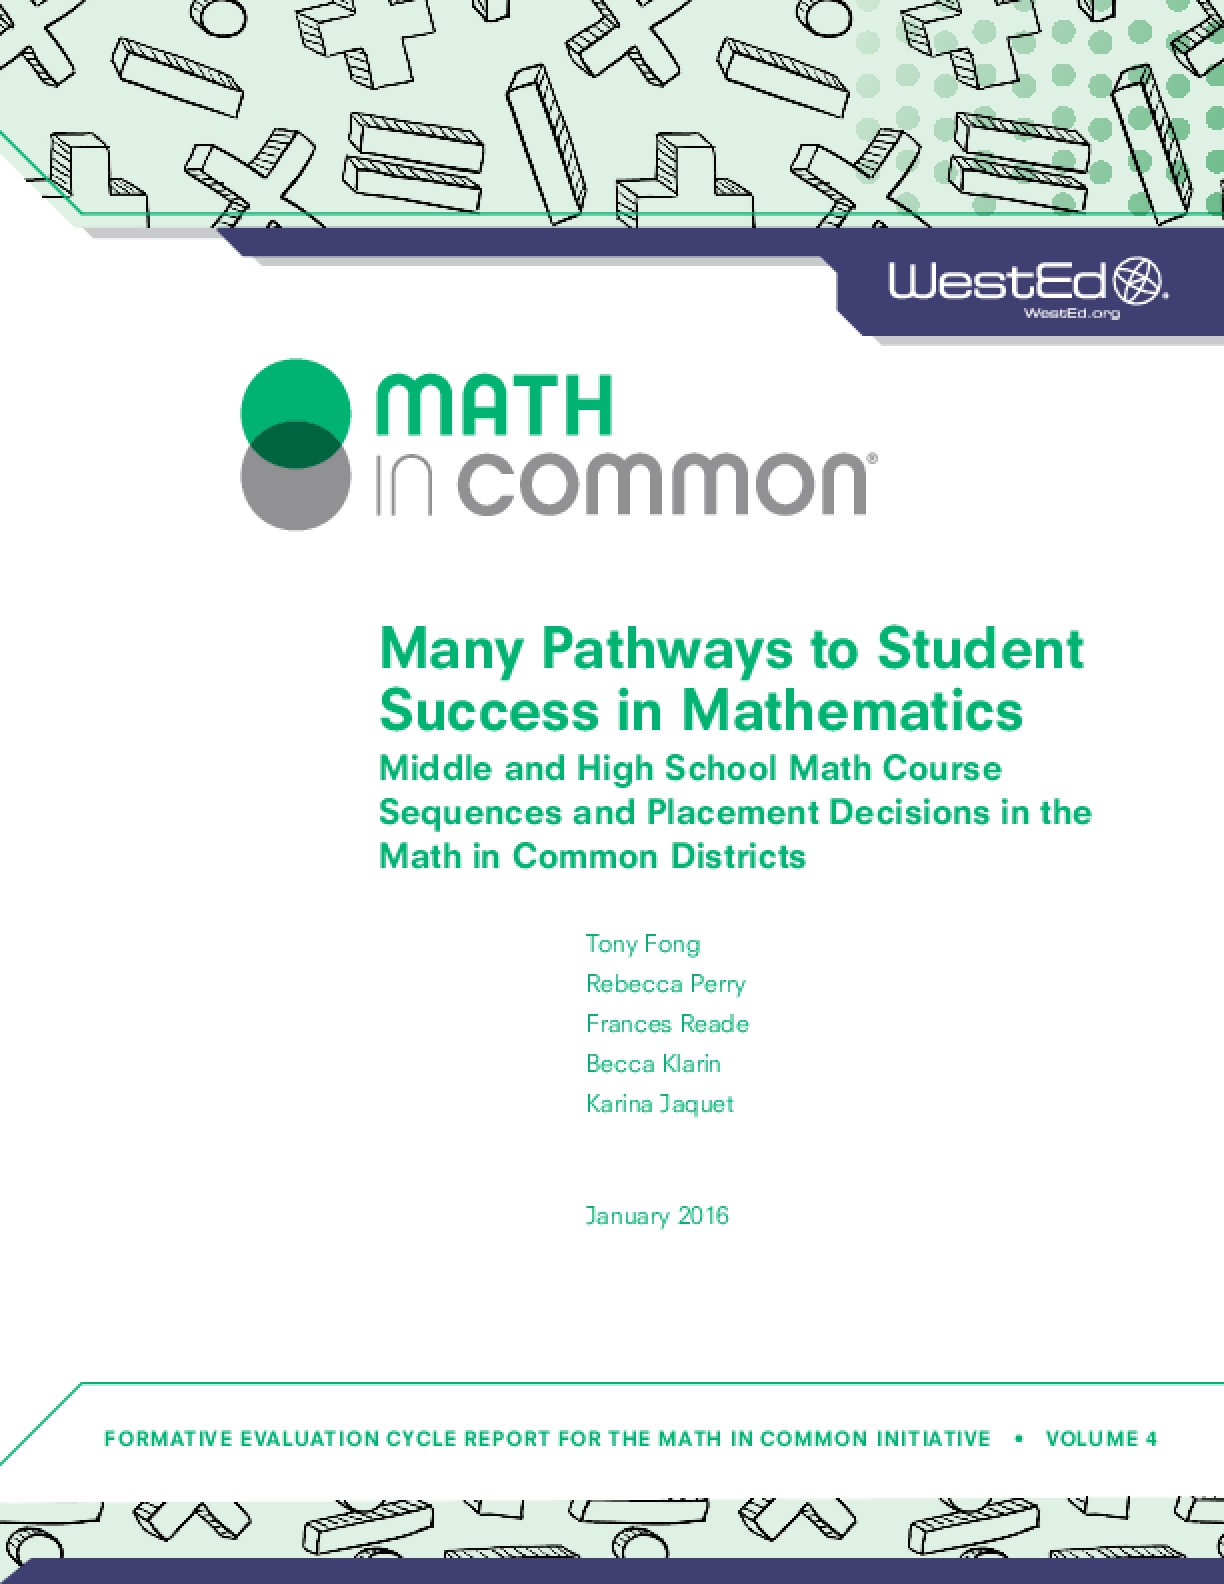 Many Pathways to Student Success in Mathematics: Middle and High School Math Course Sequences and Placement Decisions in the Math in Common Districts